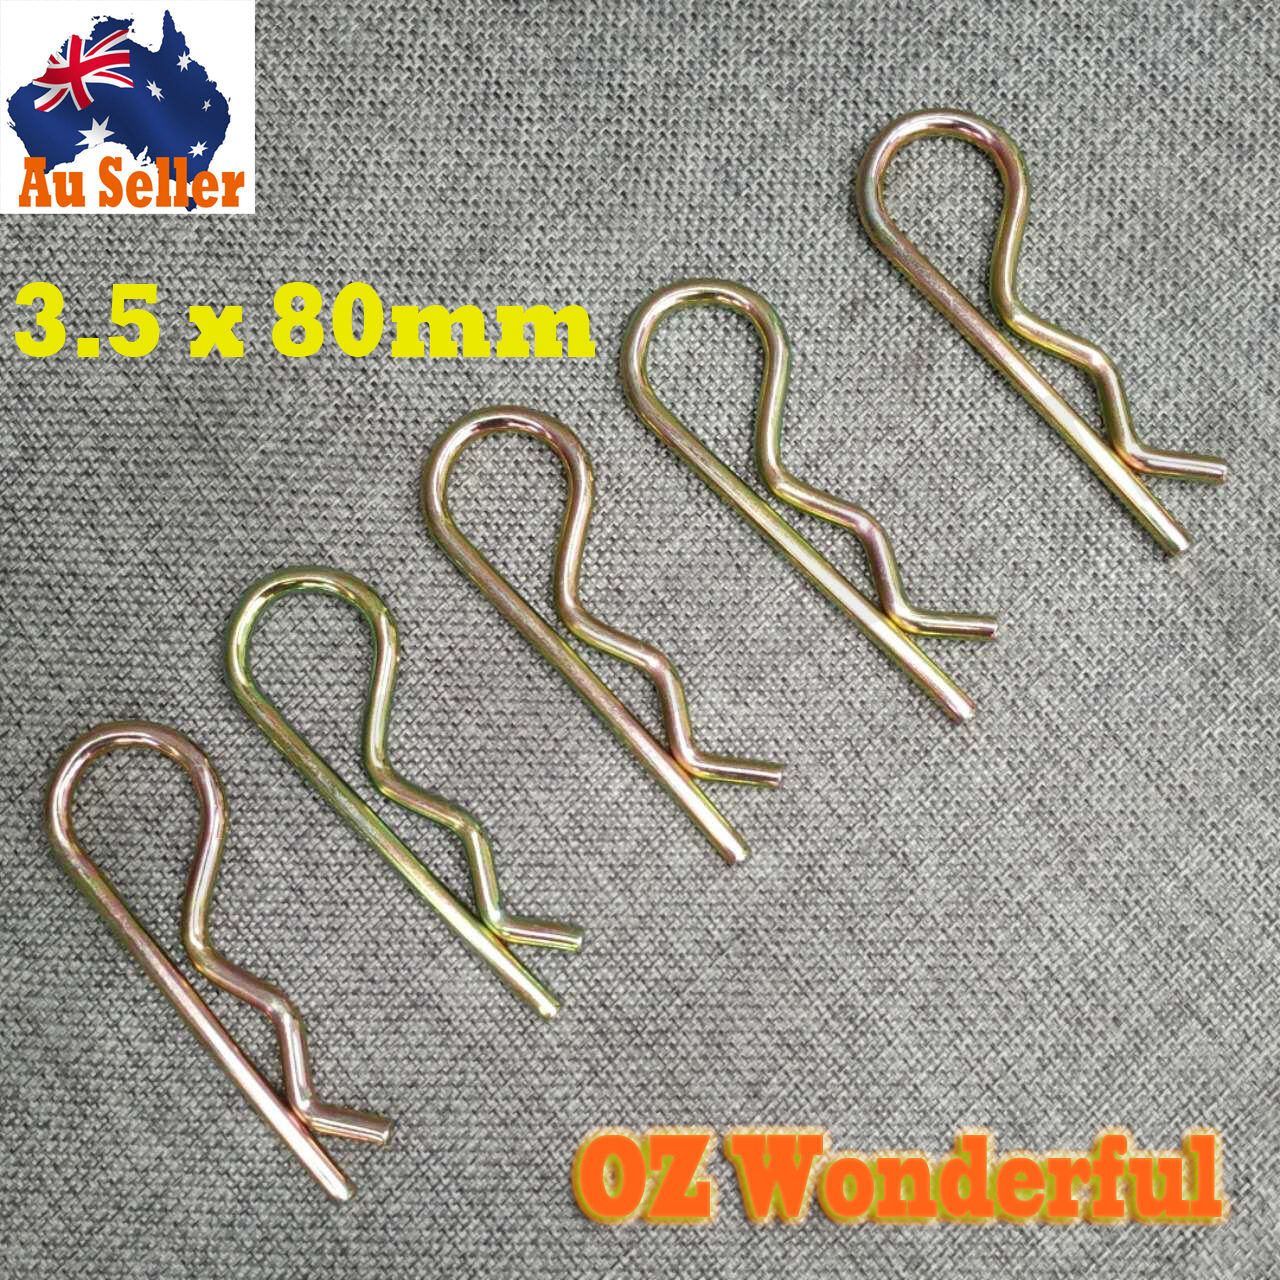 10pcs Hitch Pins R Pin Clips Assortment Hardware Tool Lynch Linch ...